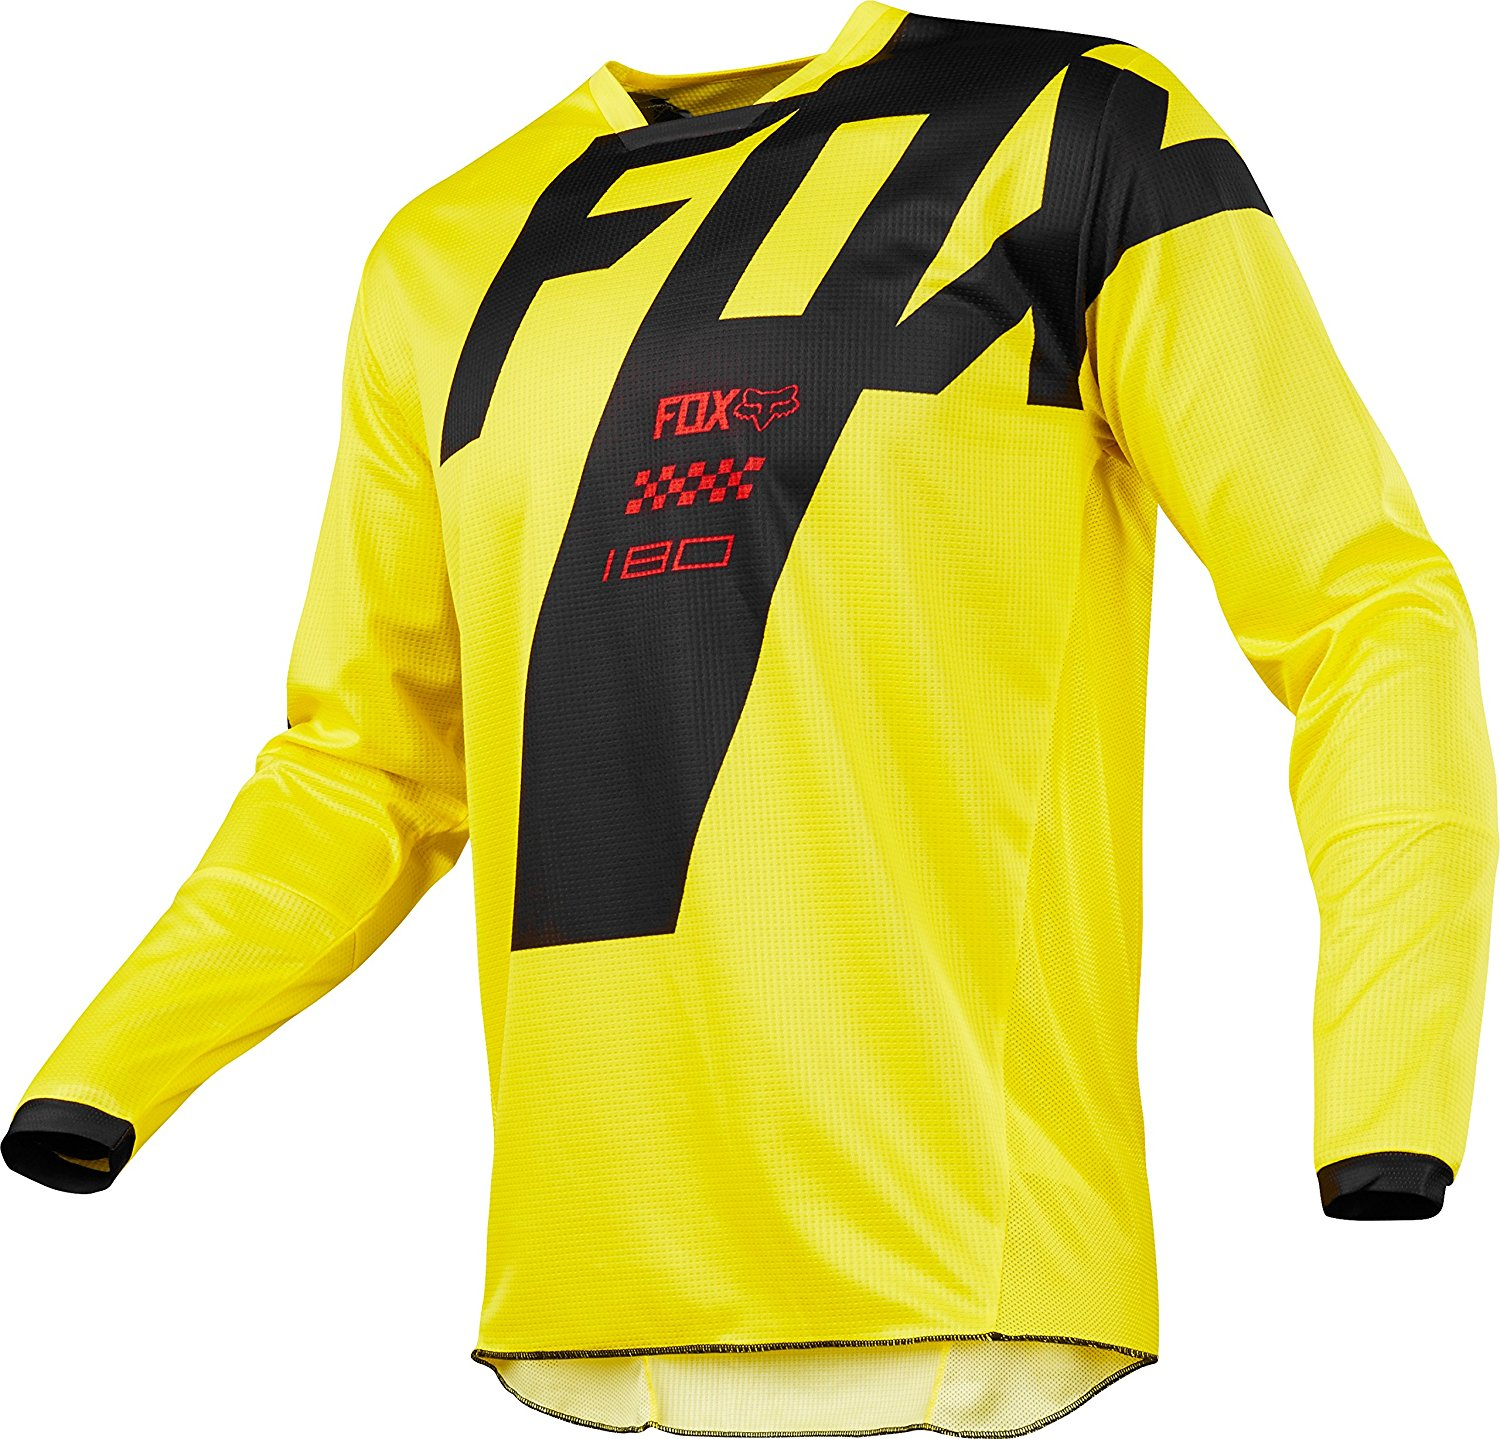 2018 YOUTH 180 MASTAR JERSEY YELLOW M, The Fox Racing jersey is a perfect fusion of function and style By Fox Racing from USA